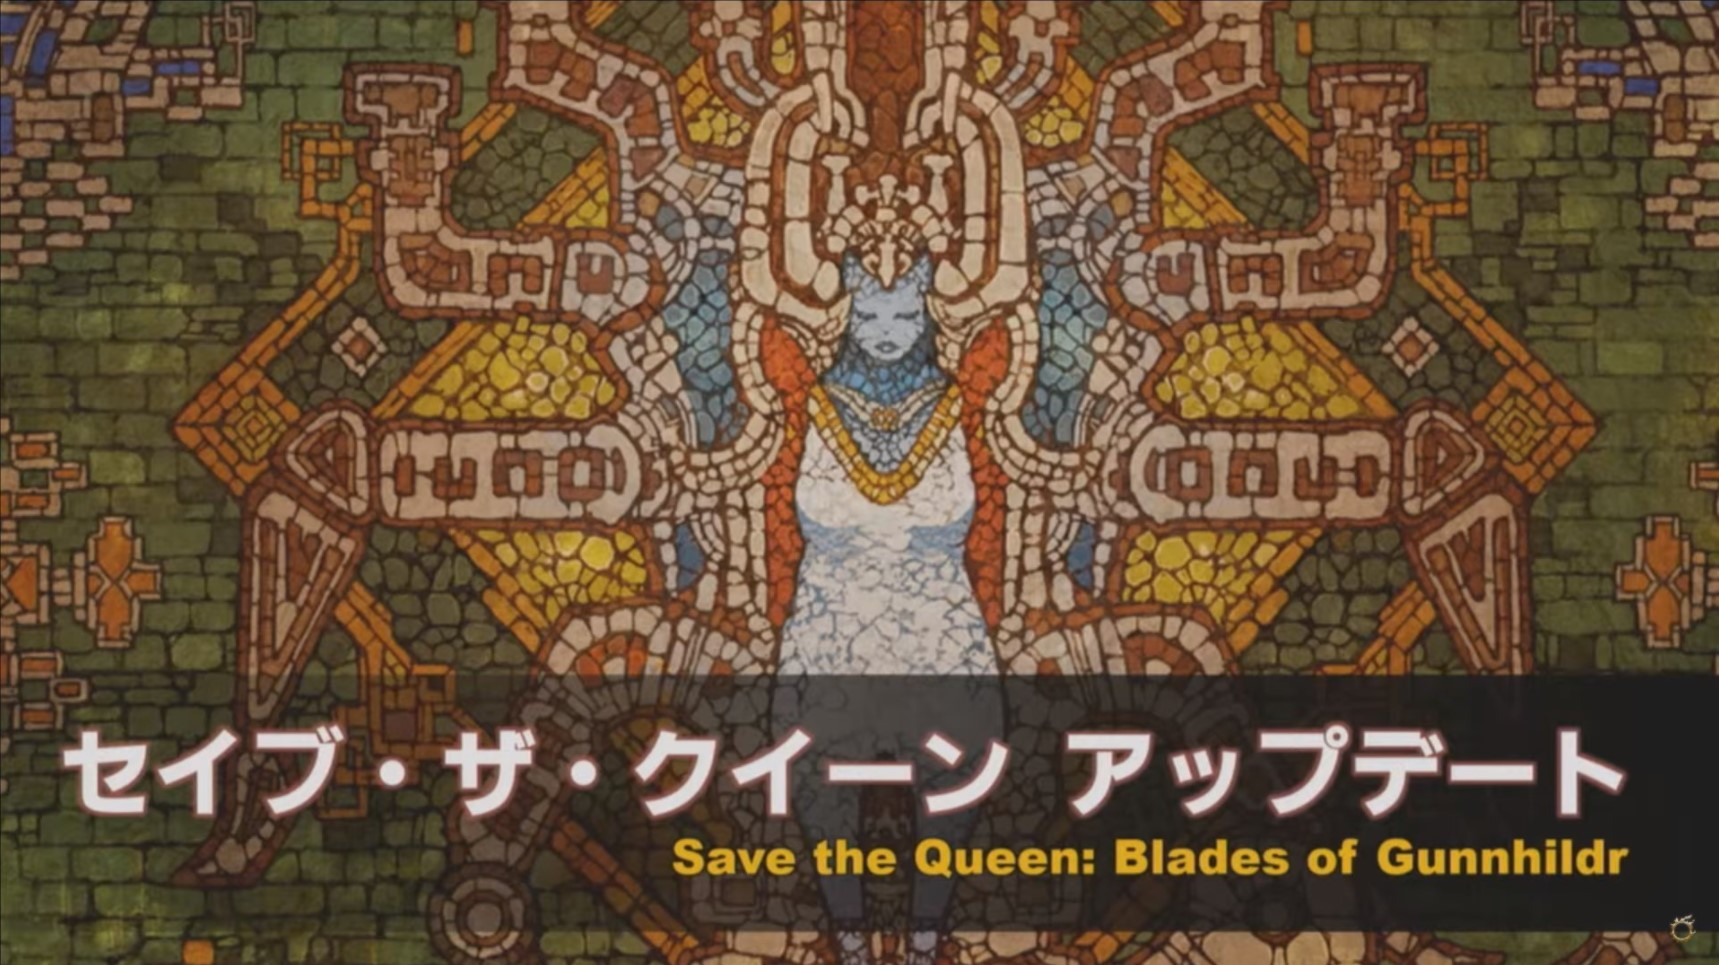 Save The Queen: Blades of Gunnhildr